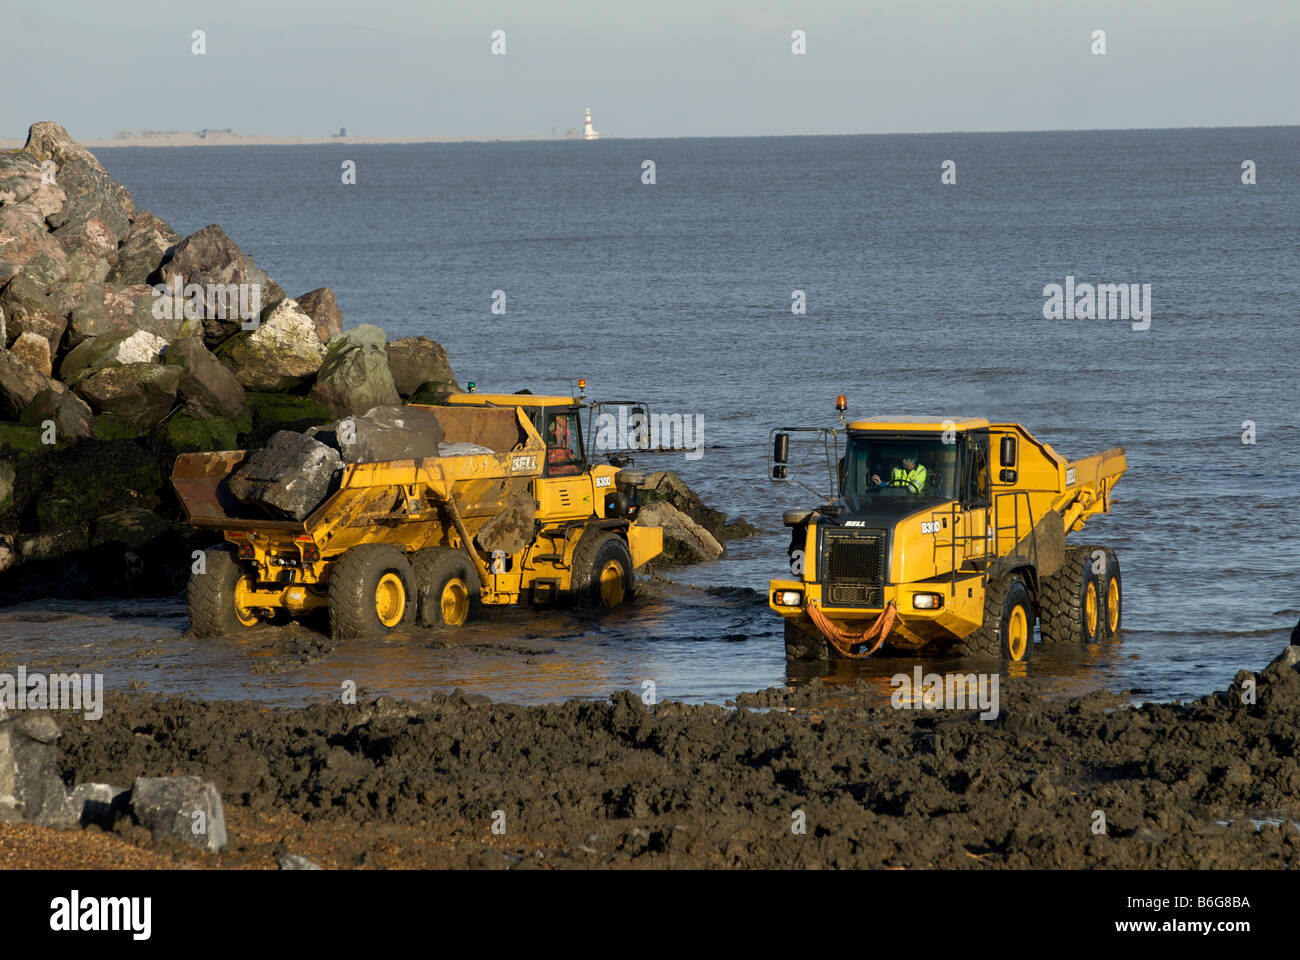 Work being undertaken on a £2.2m sea defence project, East Lane, Bawdsey, Suffolk, UK. - Stock Image